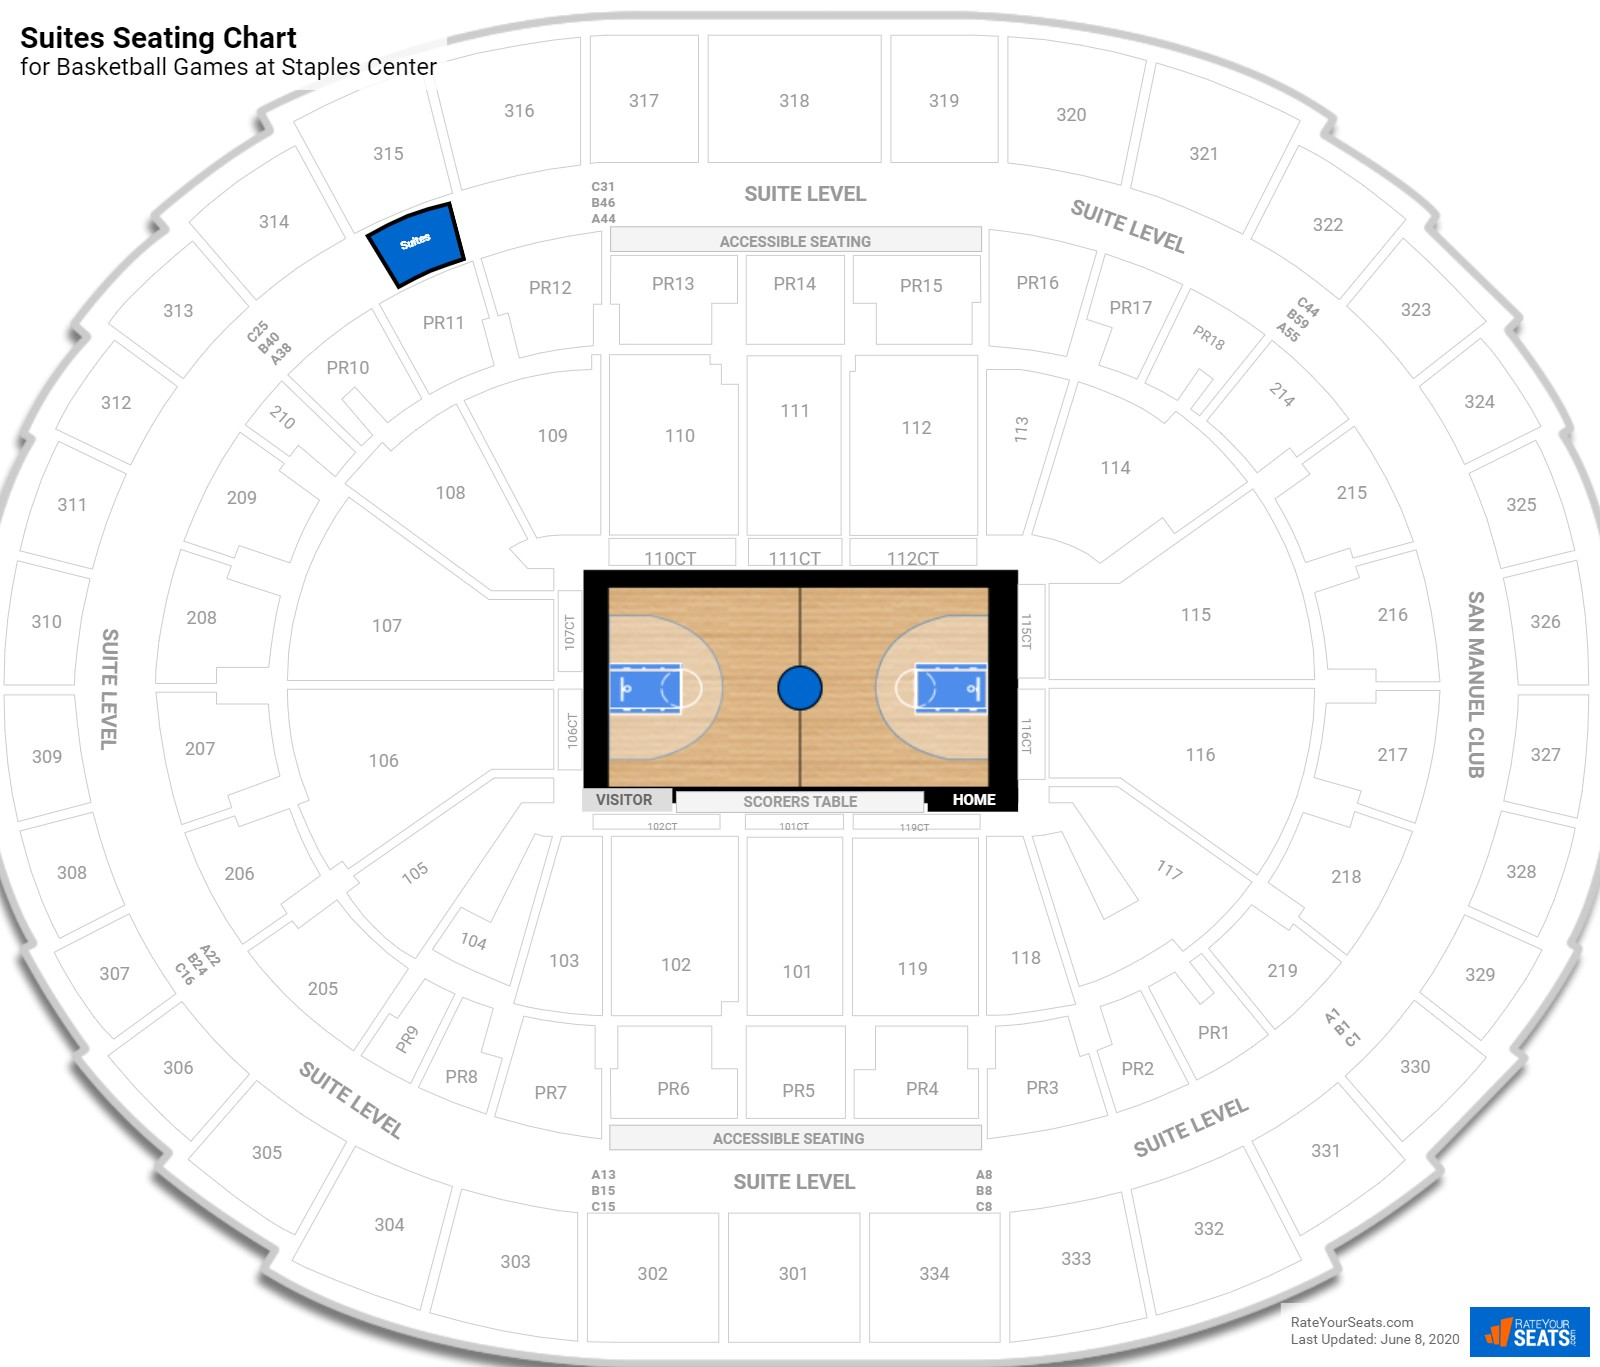 Staples Center Suites seating chart